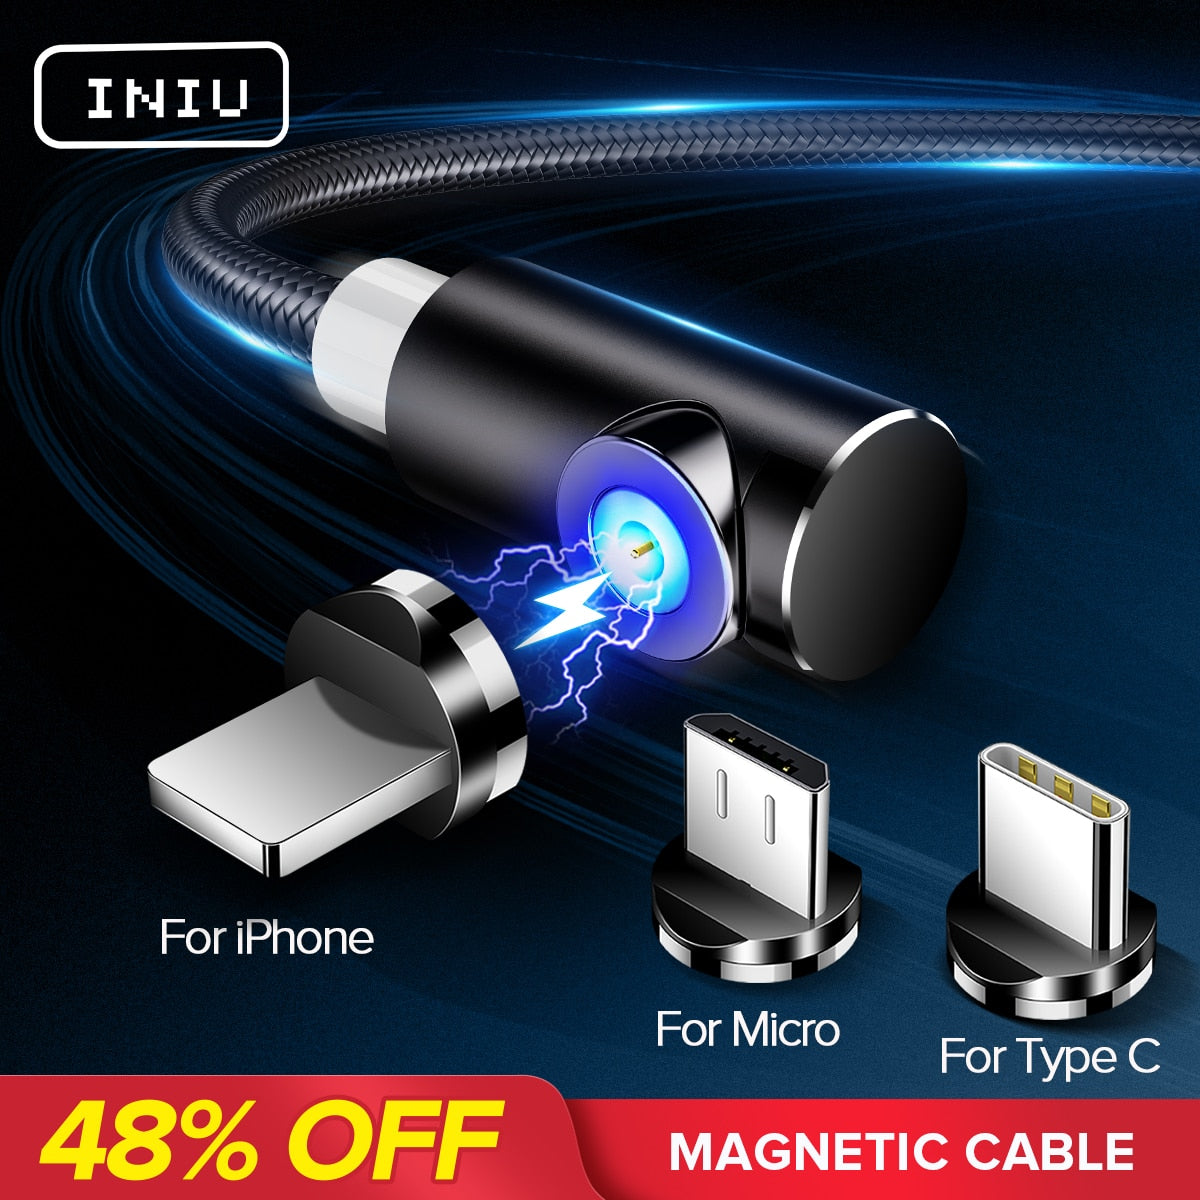 Magnetic Charging Cable for IPhone, Micro and Type-C - Purigen